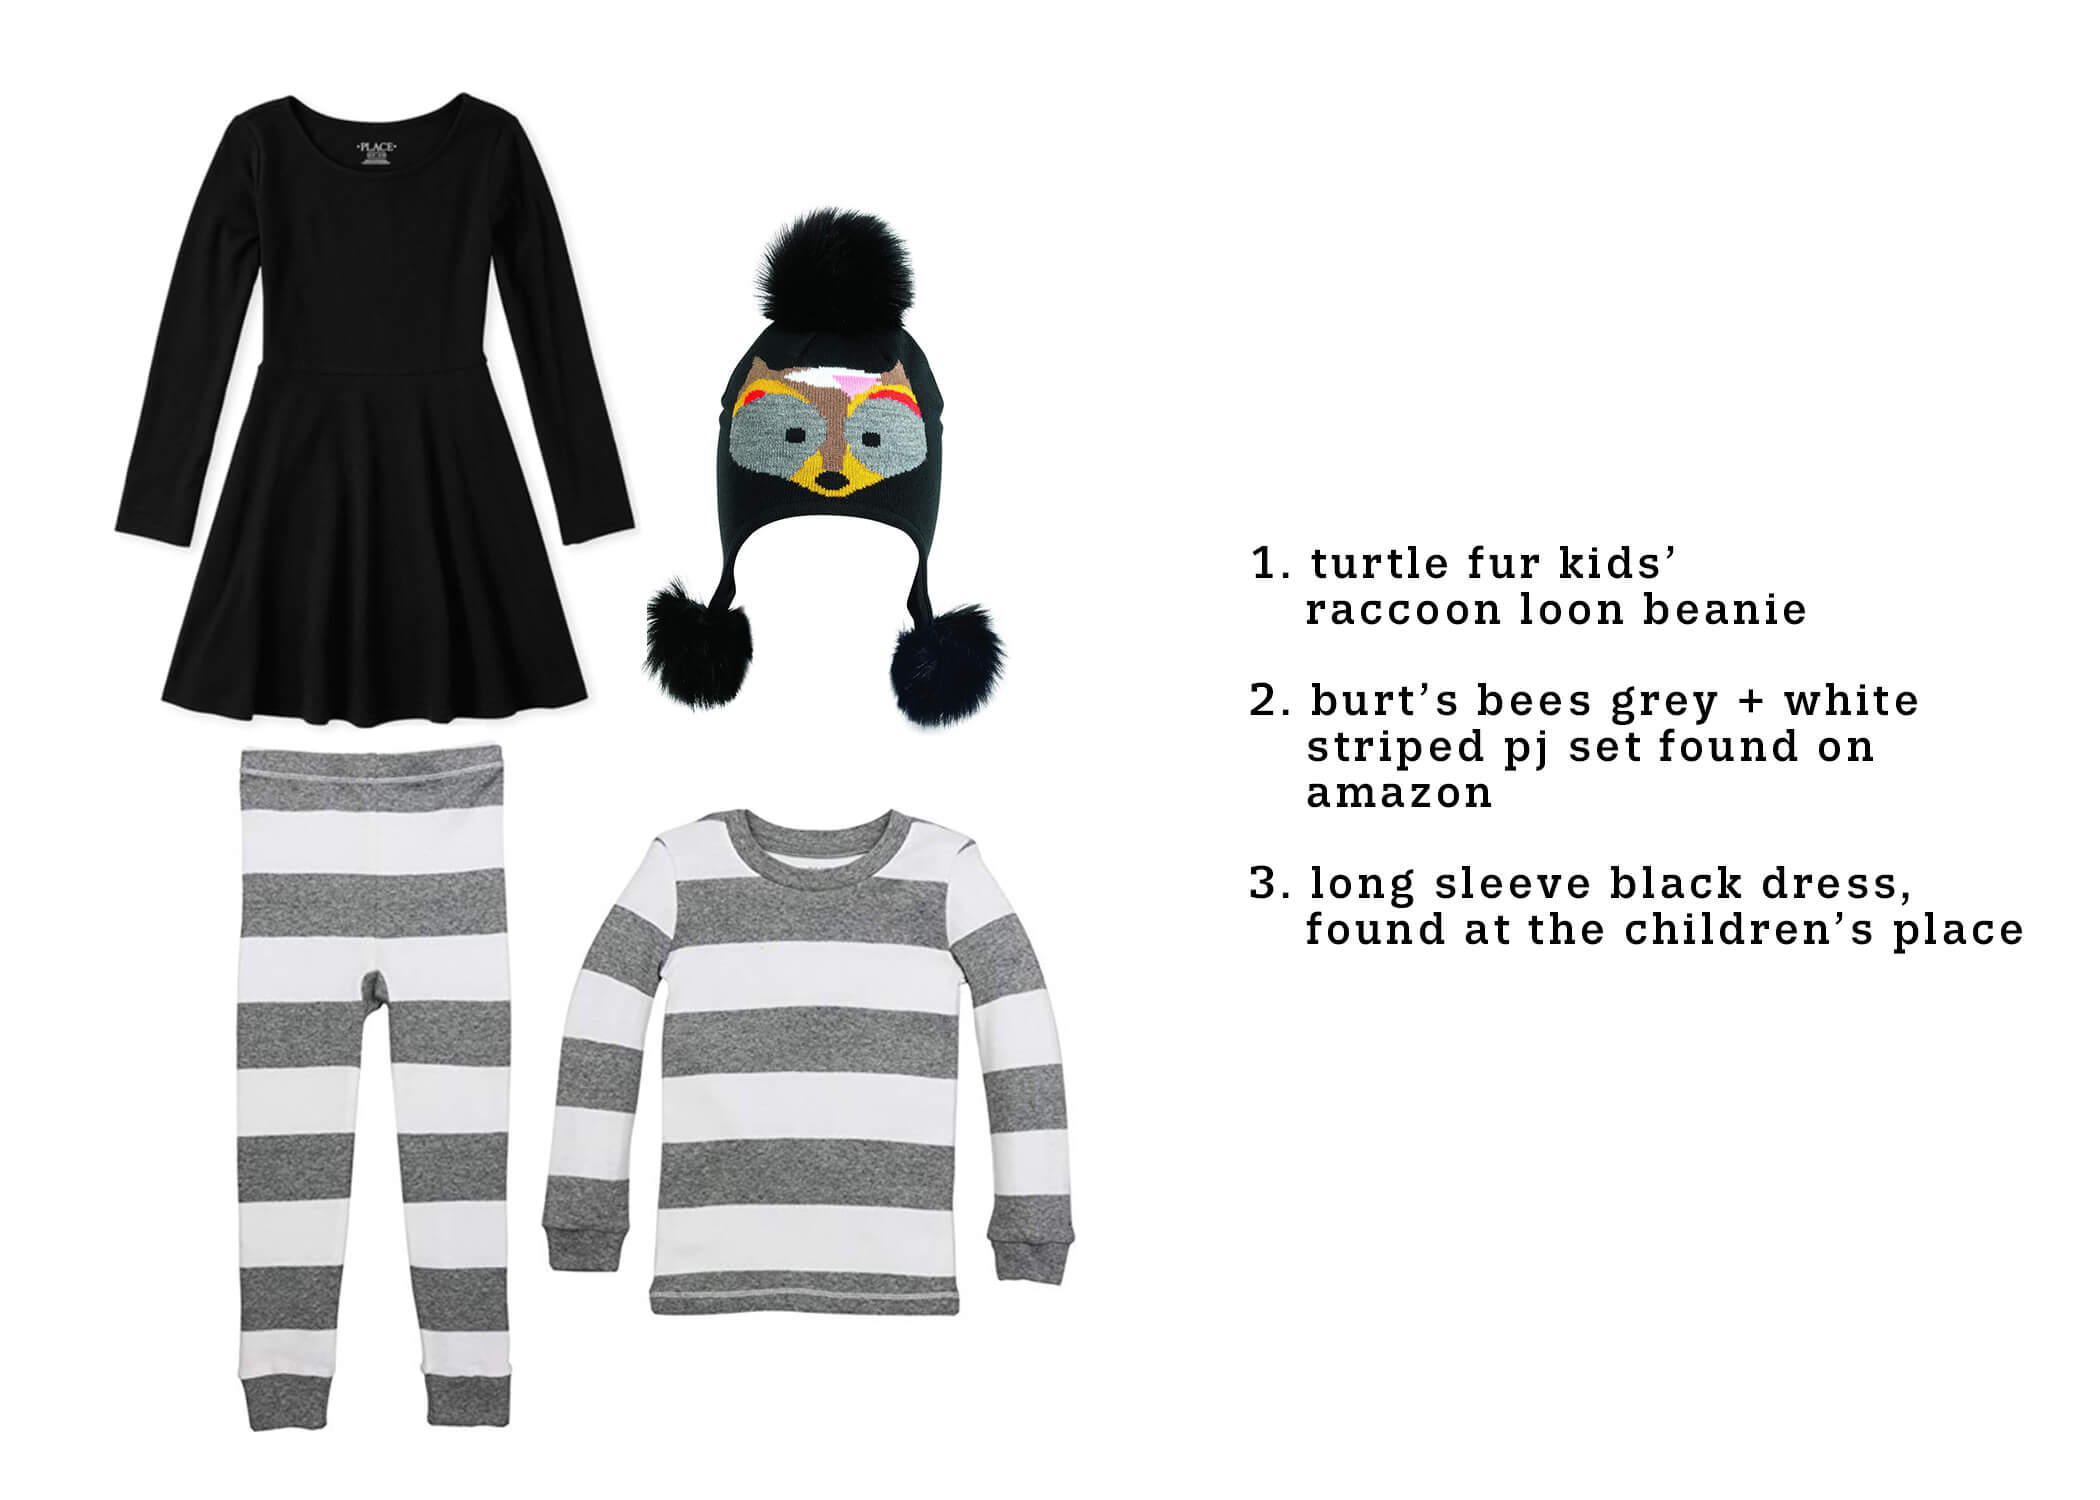 DIY kids last minute halloween costume - raccoon